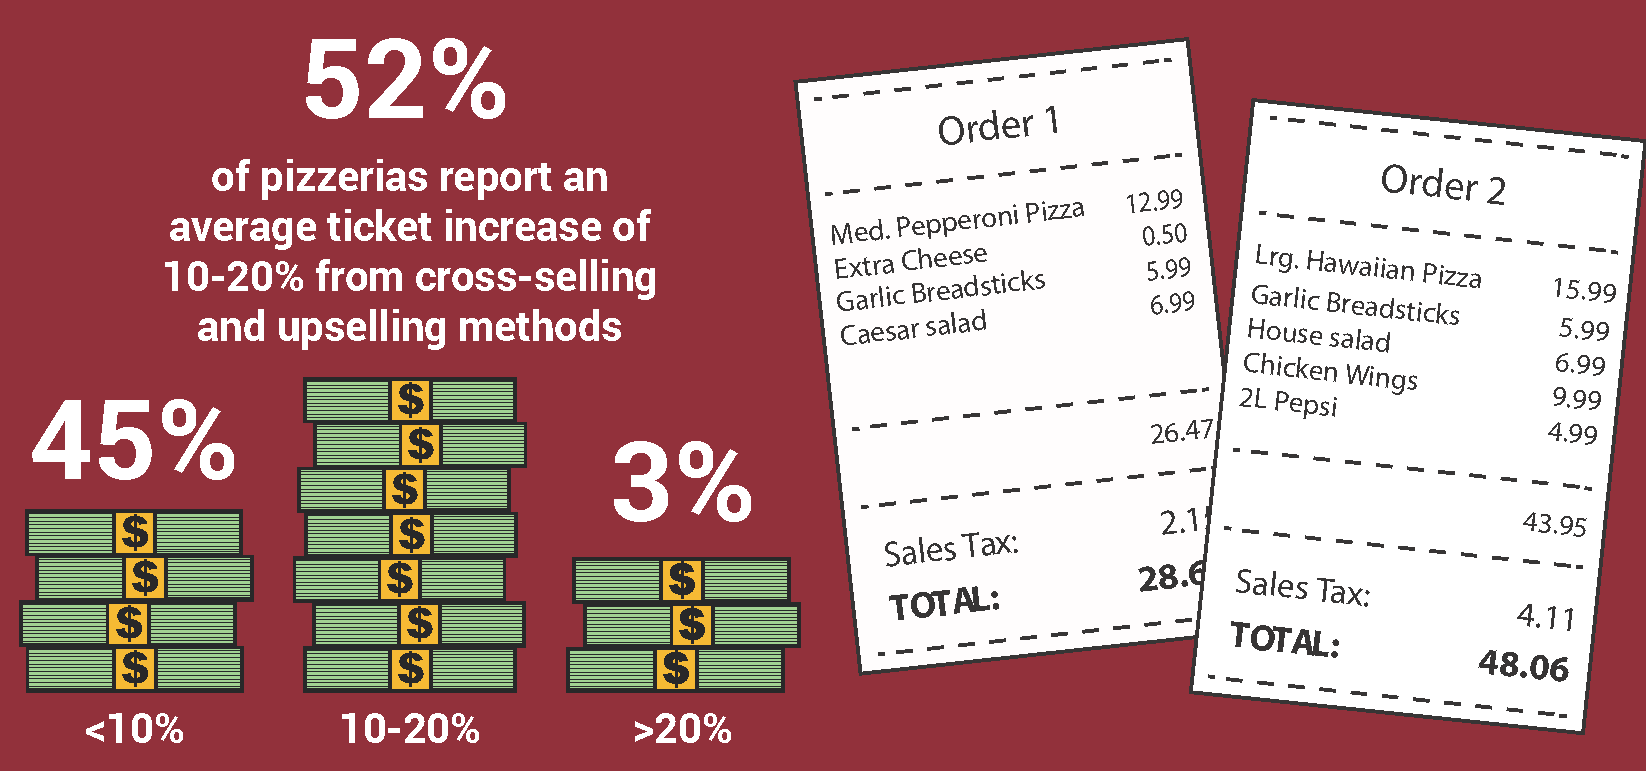 52% of pizzerias reported an average ticket increase of 10-20% from cross-selling and upselling methods